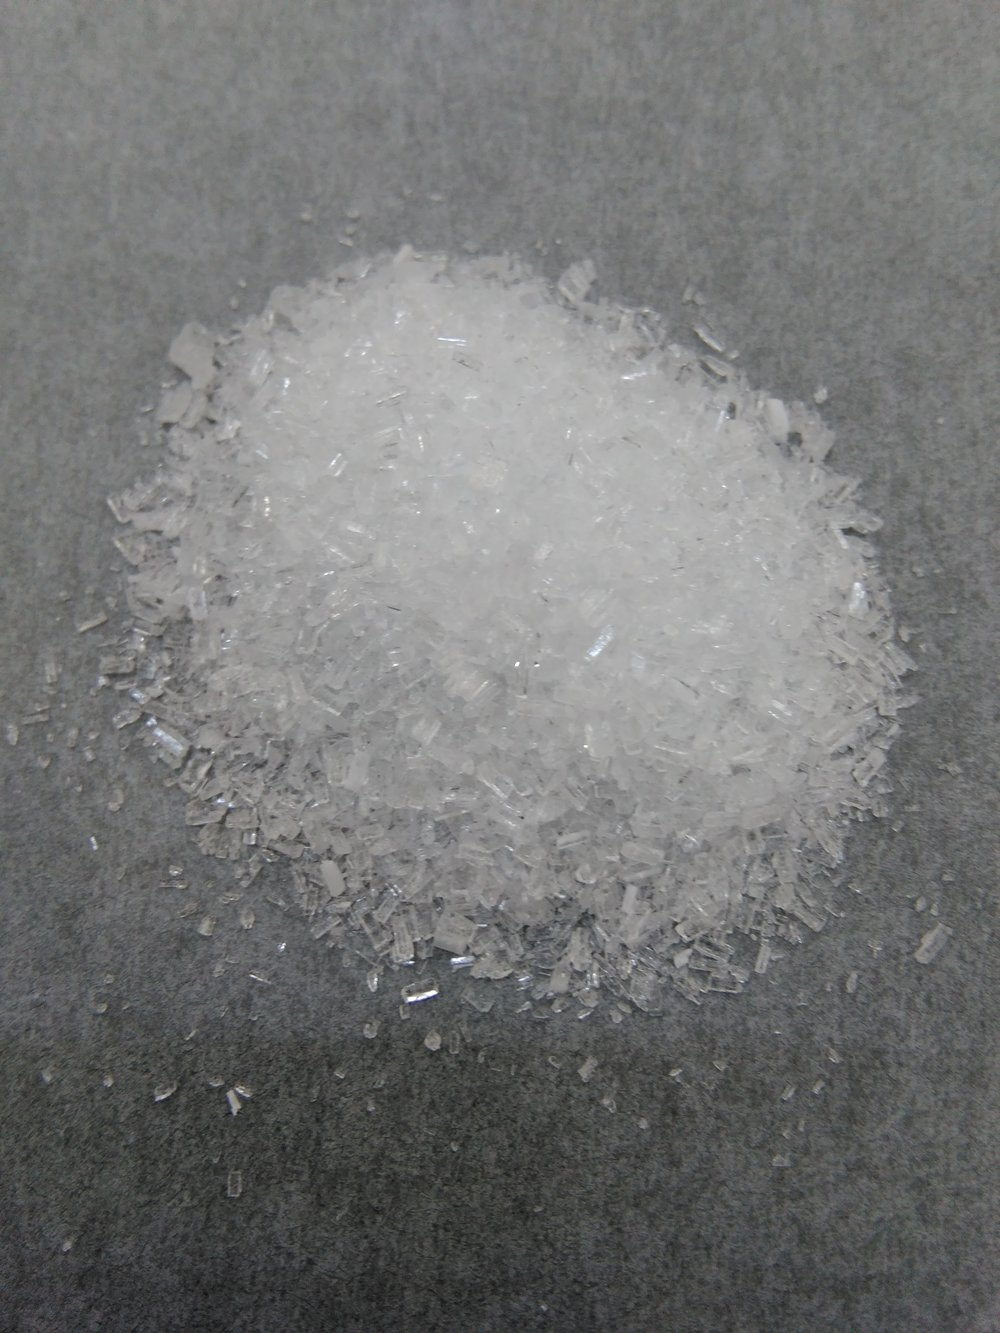 Lead acetate, one of the toxic compounds mixed by a German factory worker sentenced for poisoning his coworkers [Wikimedia Commons].